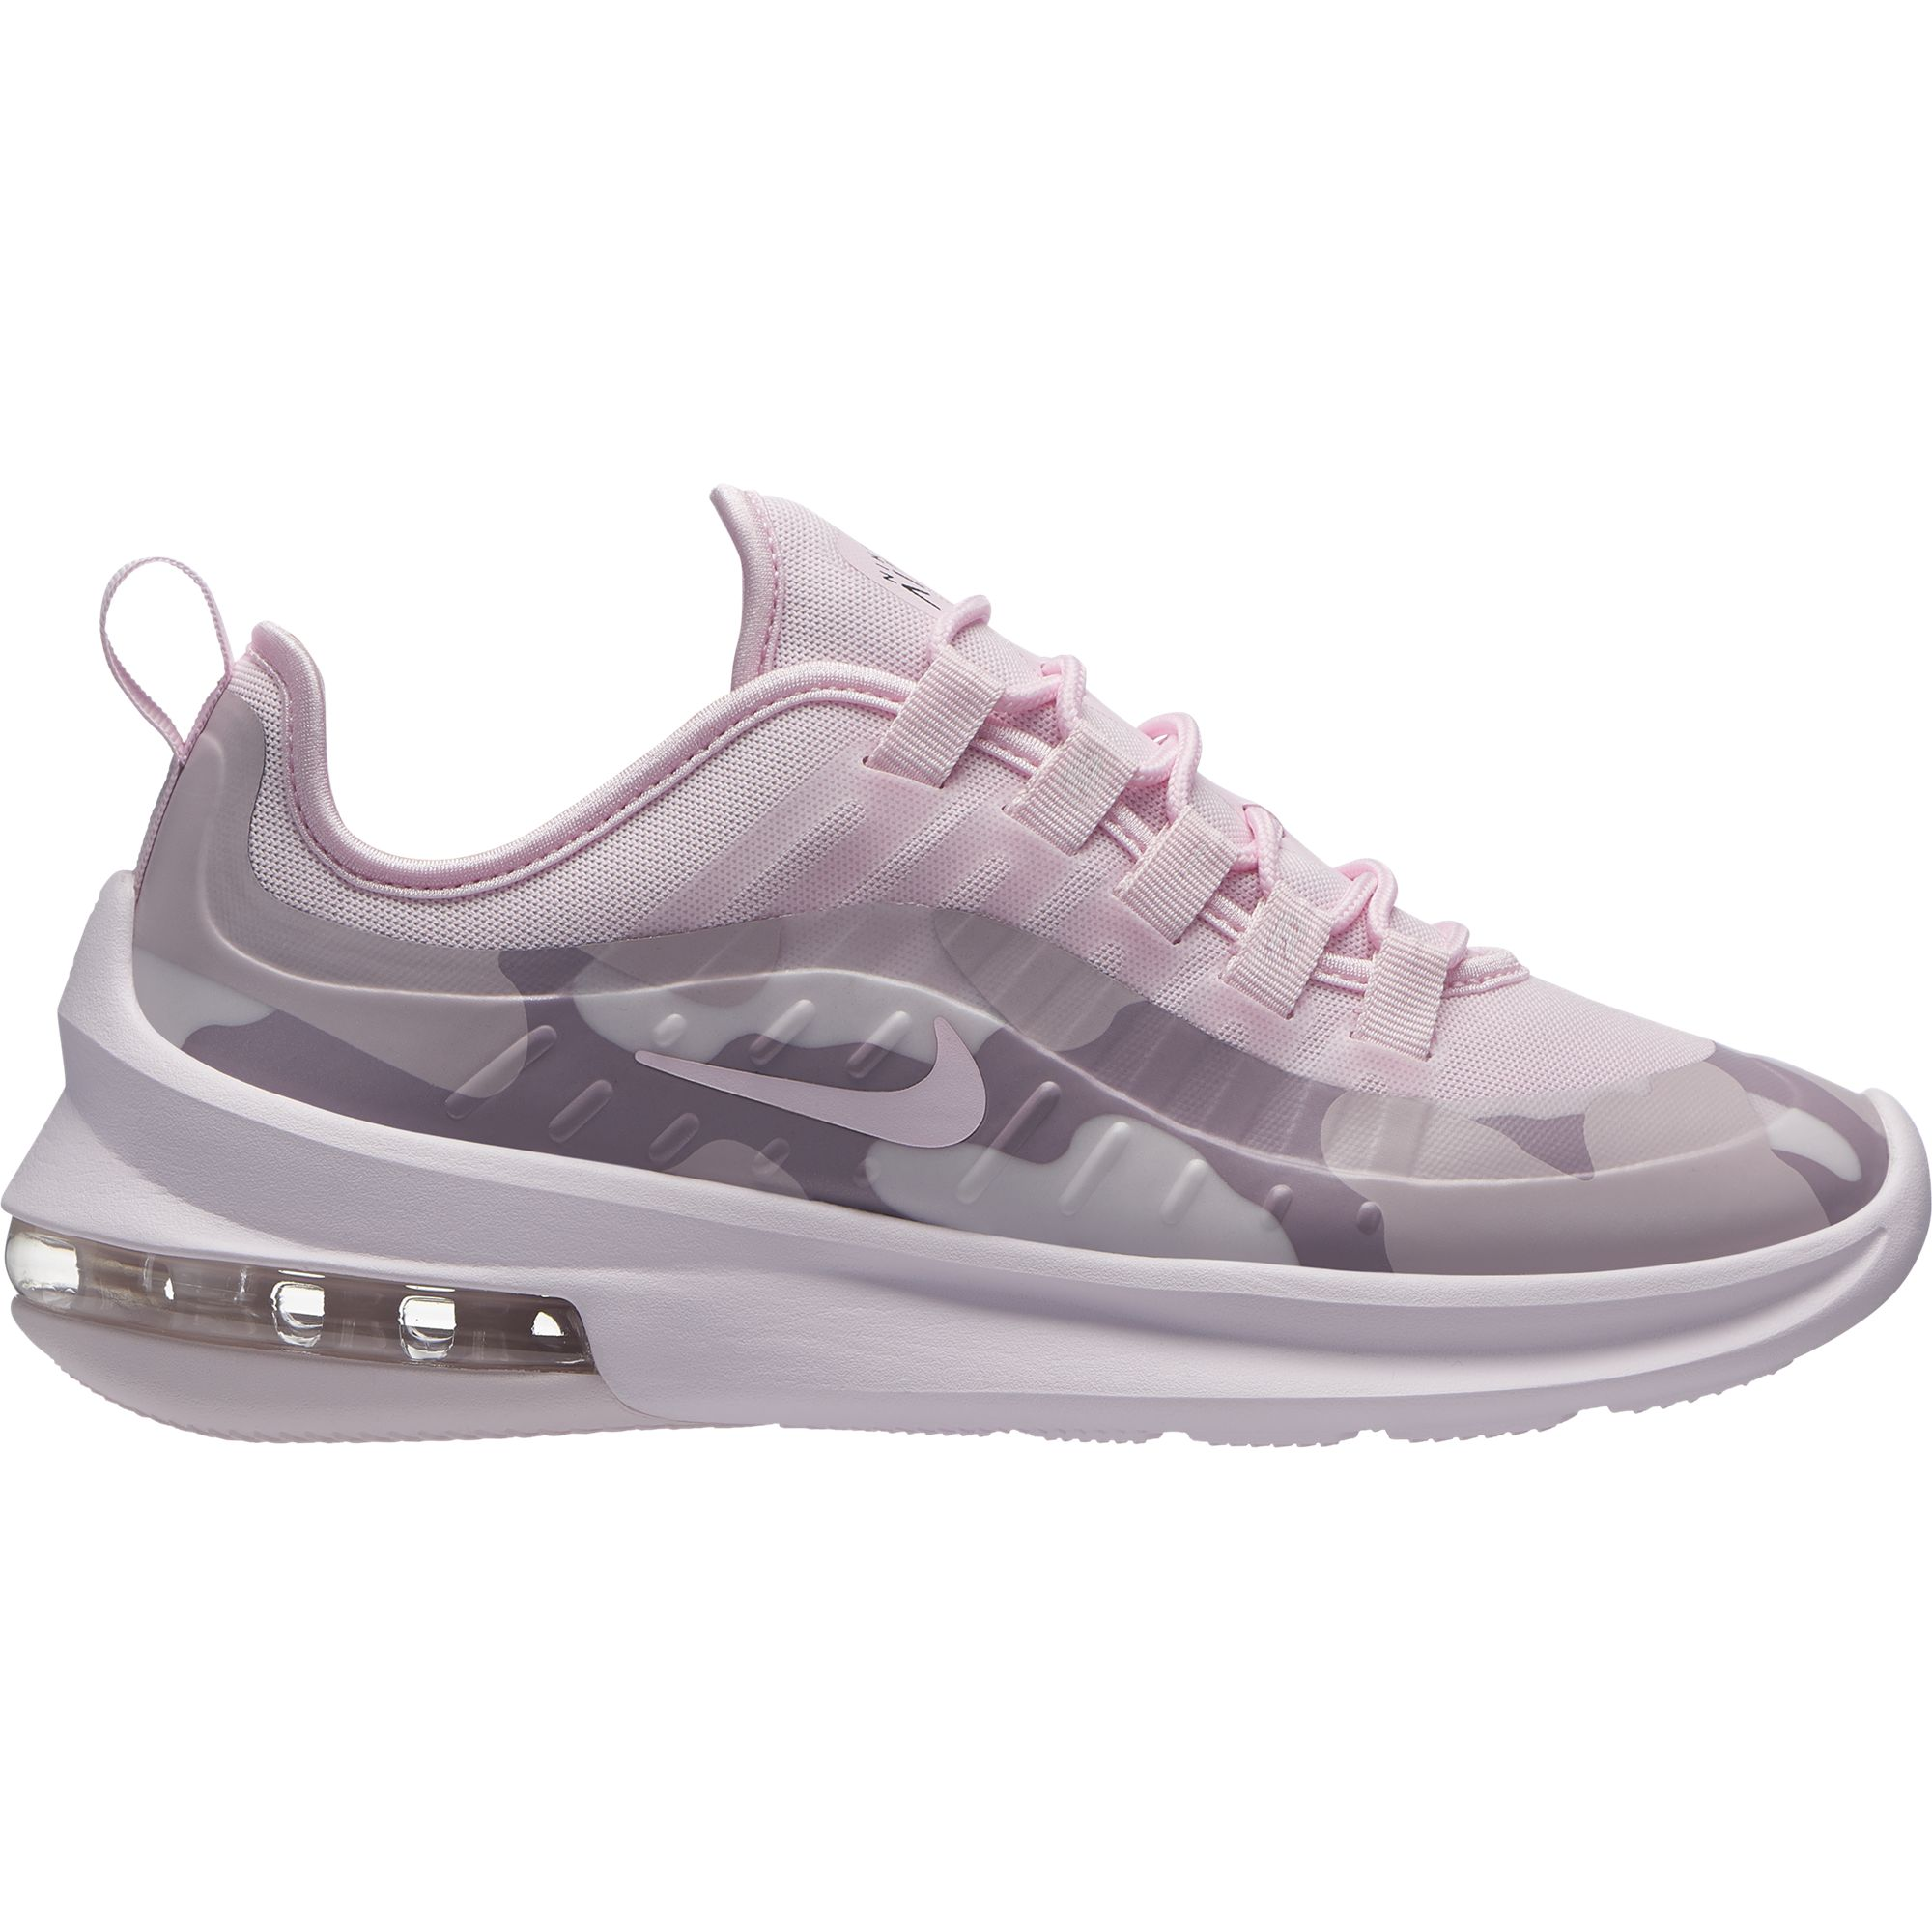 Details about Nike Women's Air Max Axis Premium Sneakers, Pale PinkPink FoamBlack